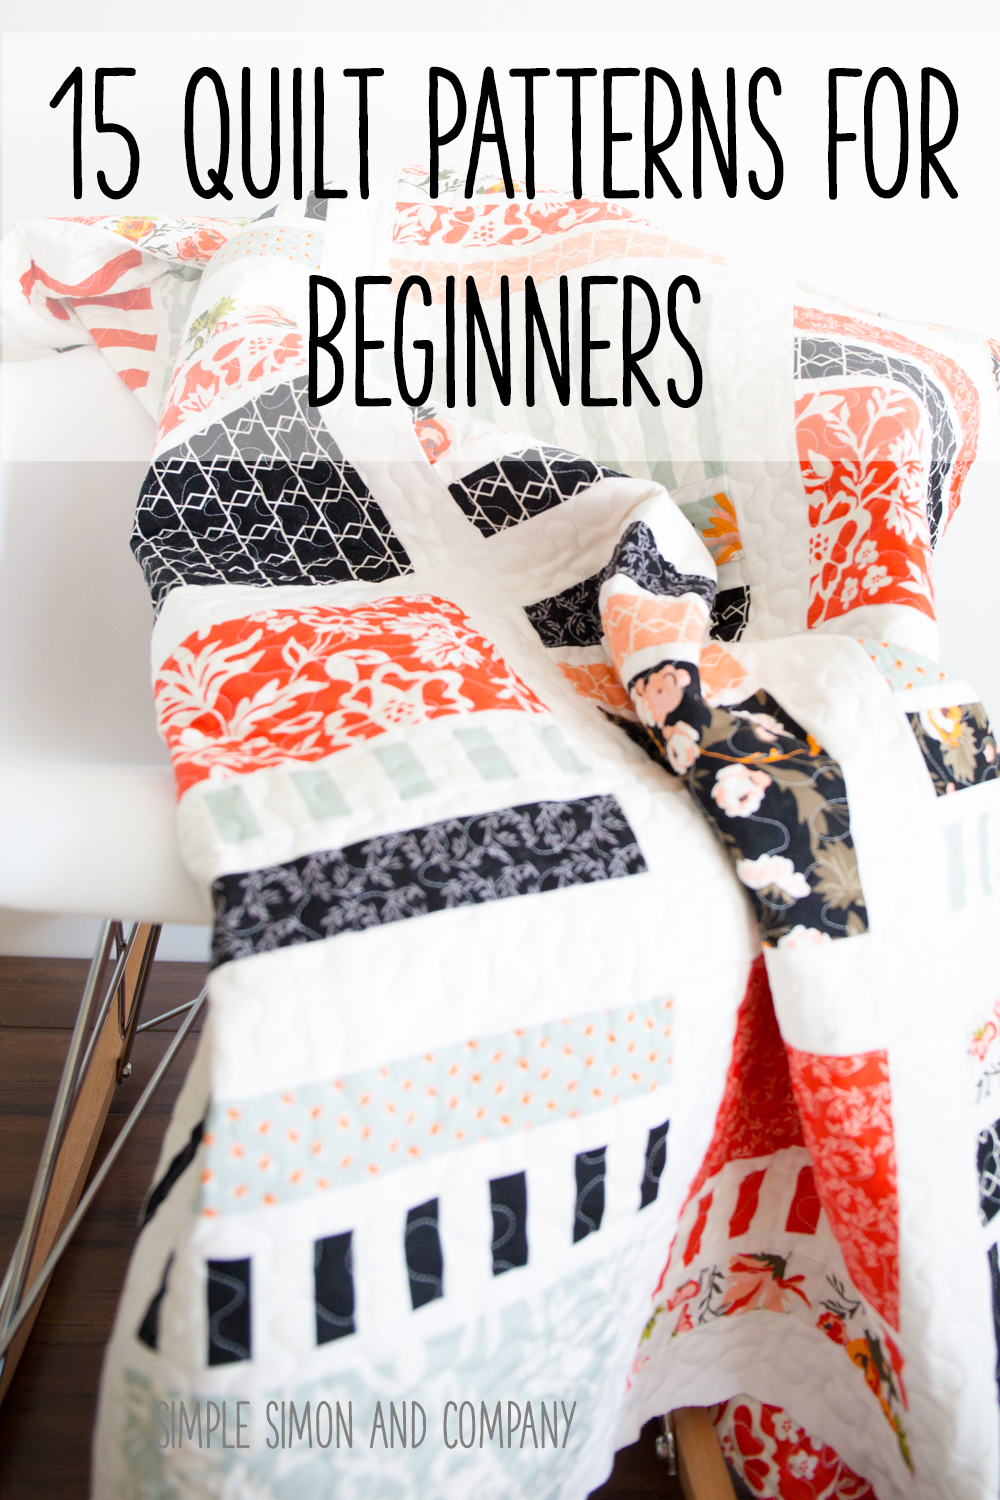 15 Quilt Patterns for Beginners - Simple Simon and Company : quilting patterns beginners - Adamdwight.com